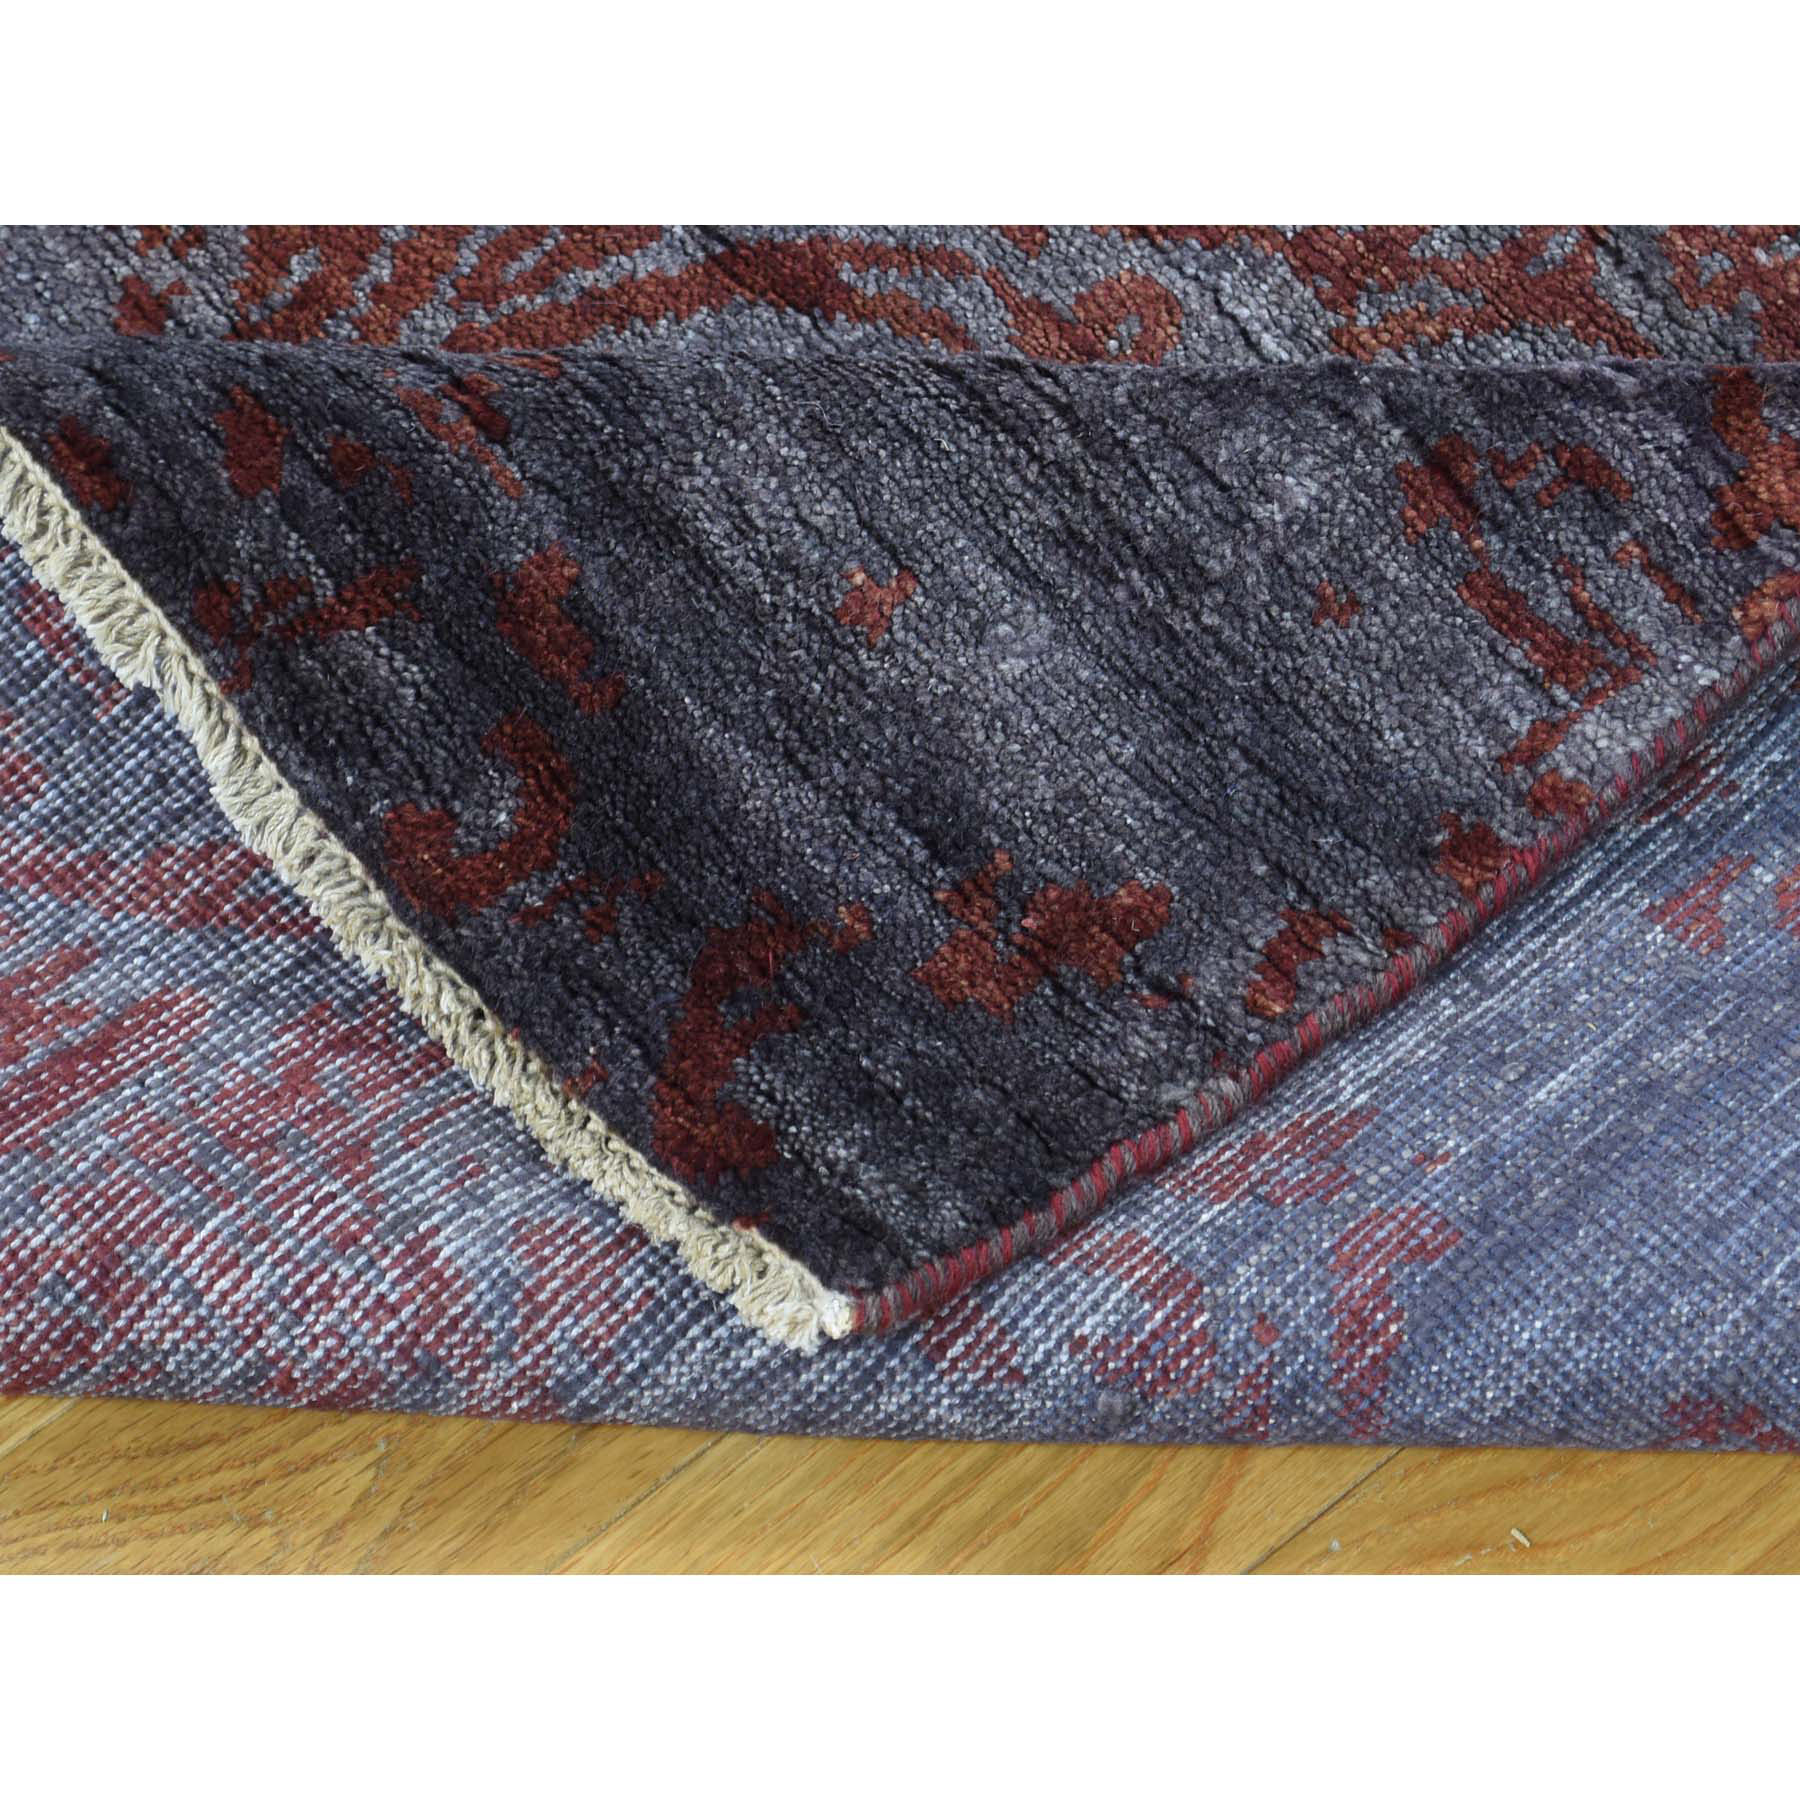 "2'7""x9'9"" Hand-Knotted Tone on Tone Damask Wool and Silk Runner Rug"